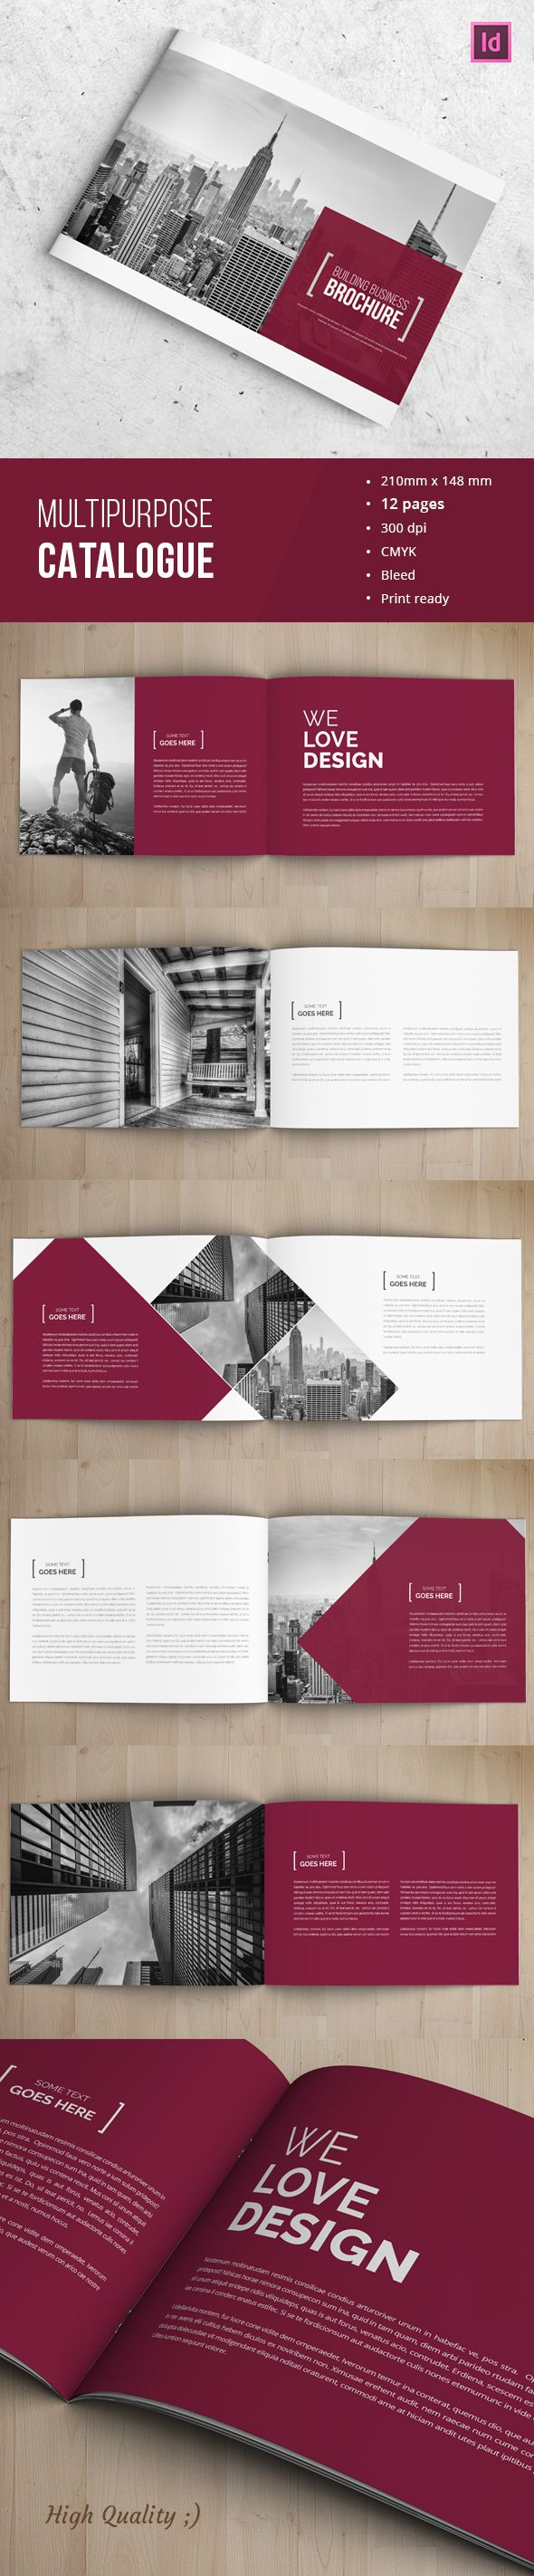 Corporate Indesign Brochure on Behance                                                                                                                                                      Más